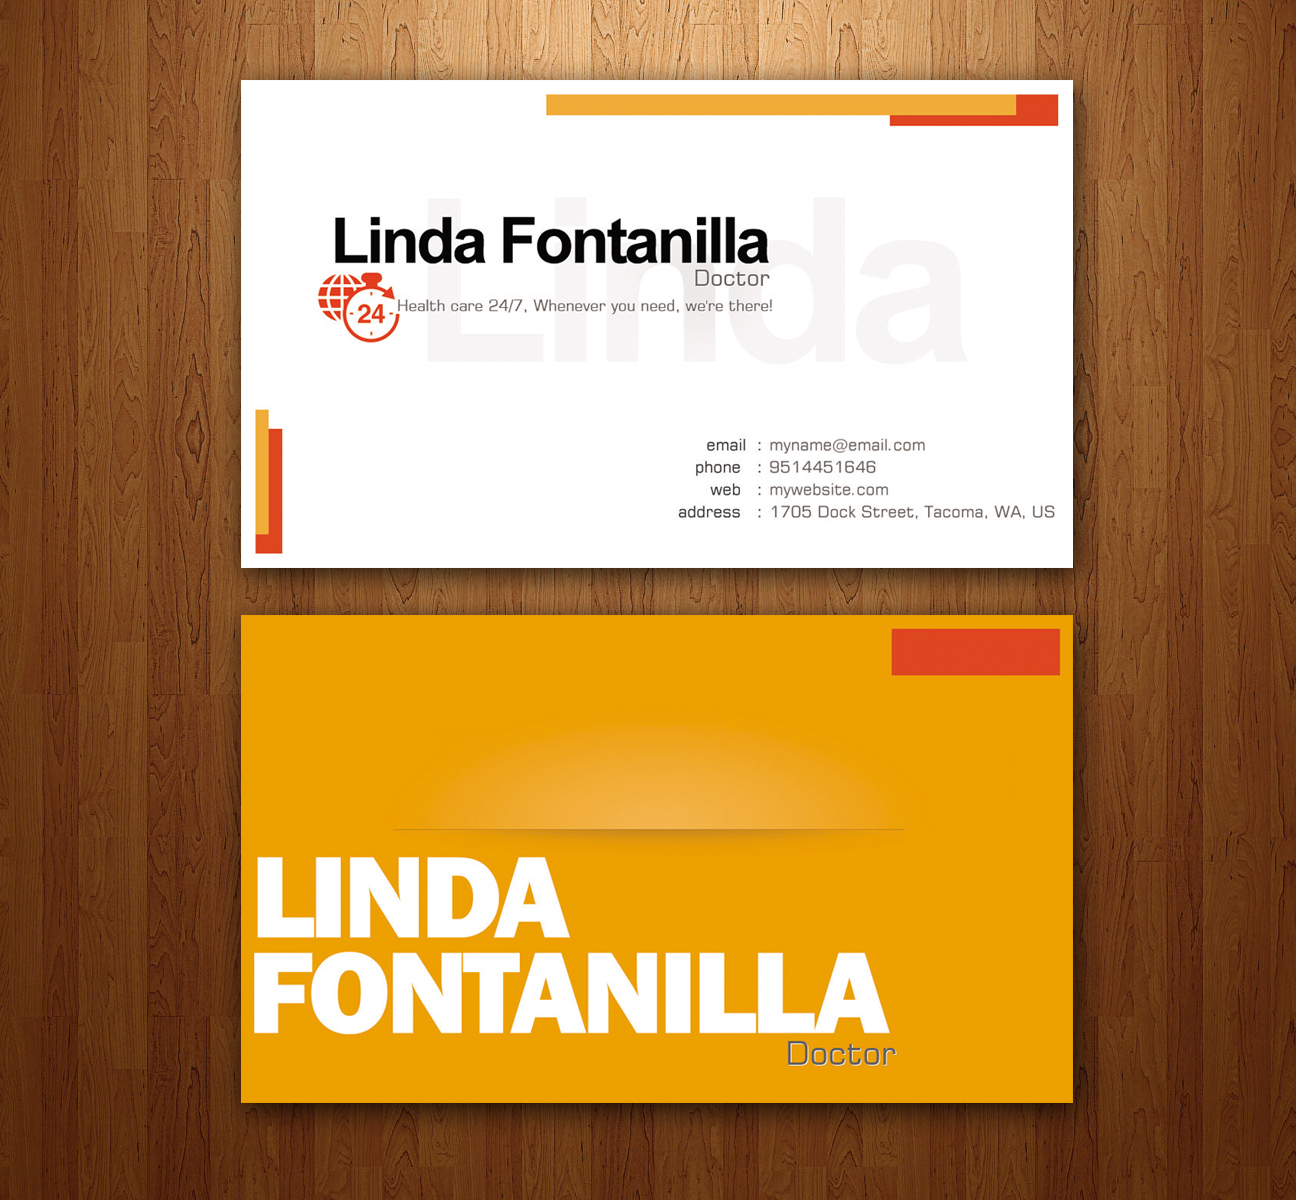 Name Card Design For Linda Fontanilla By Sigitarrin